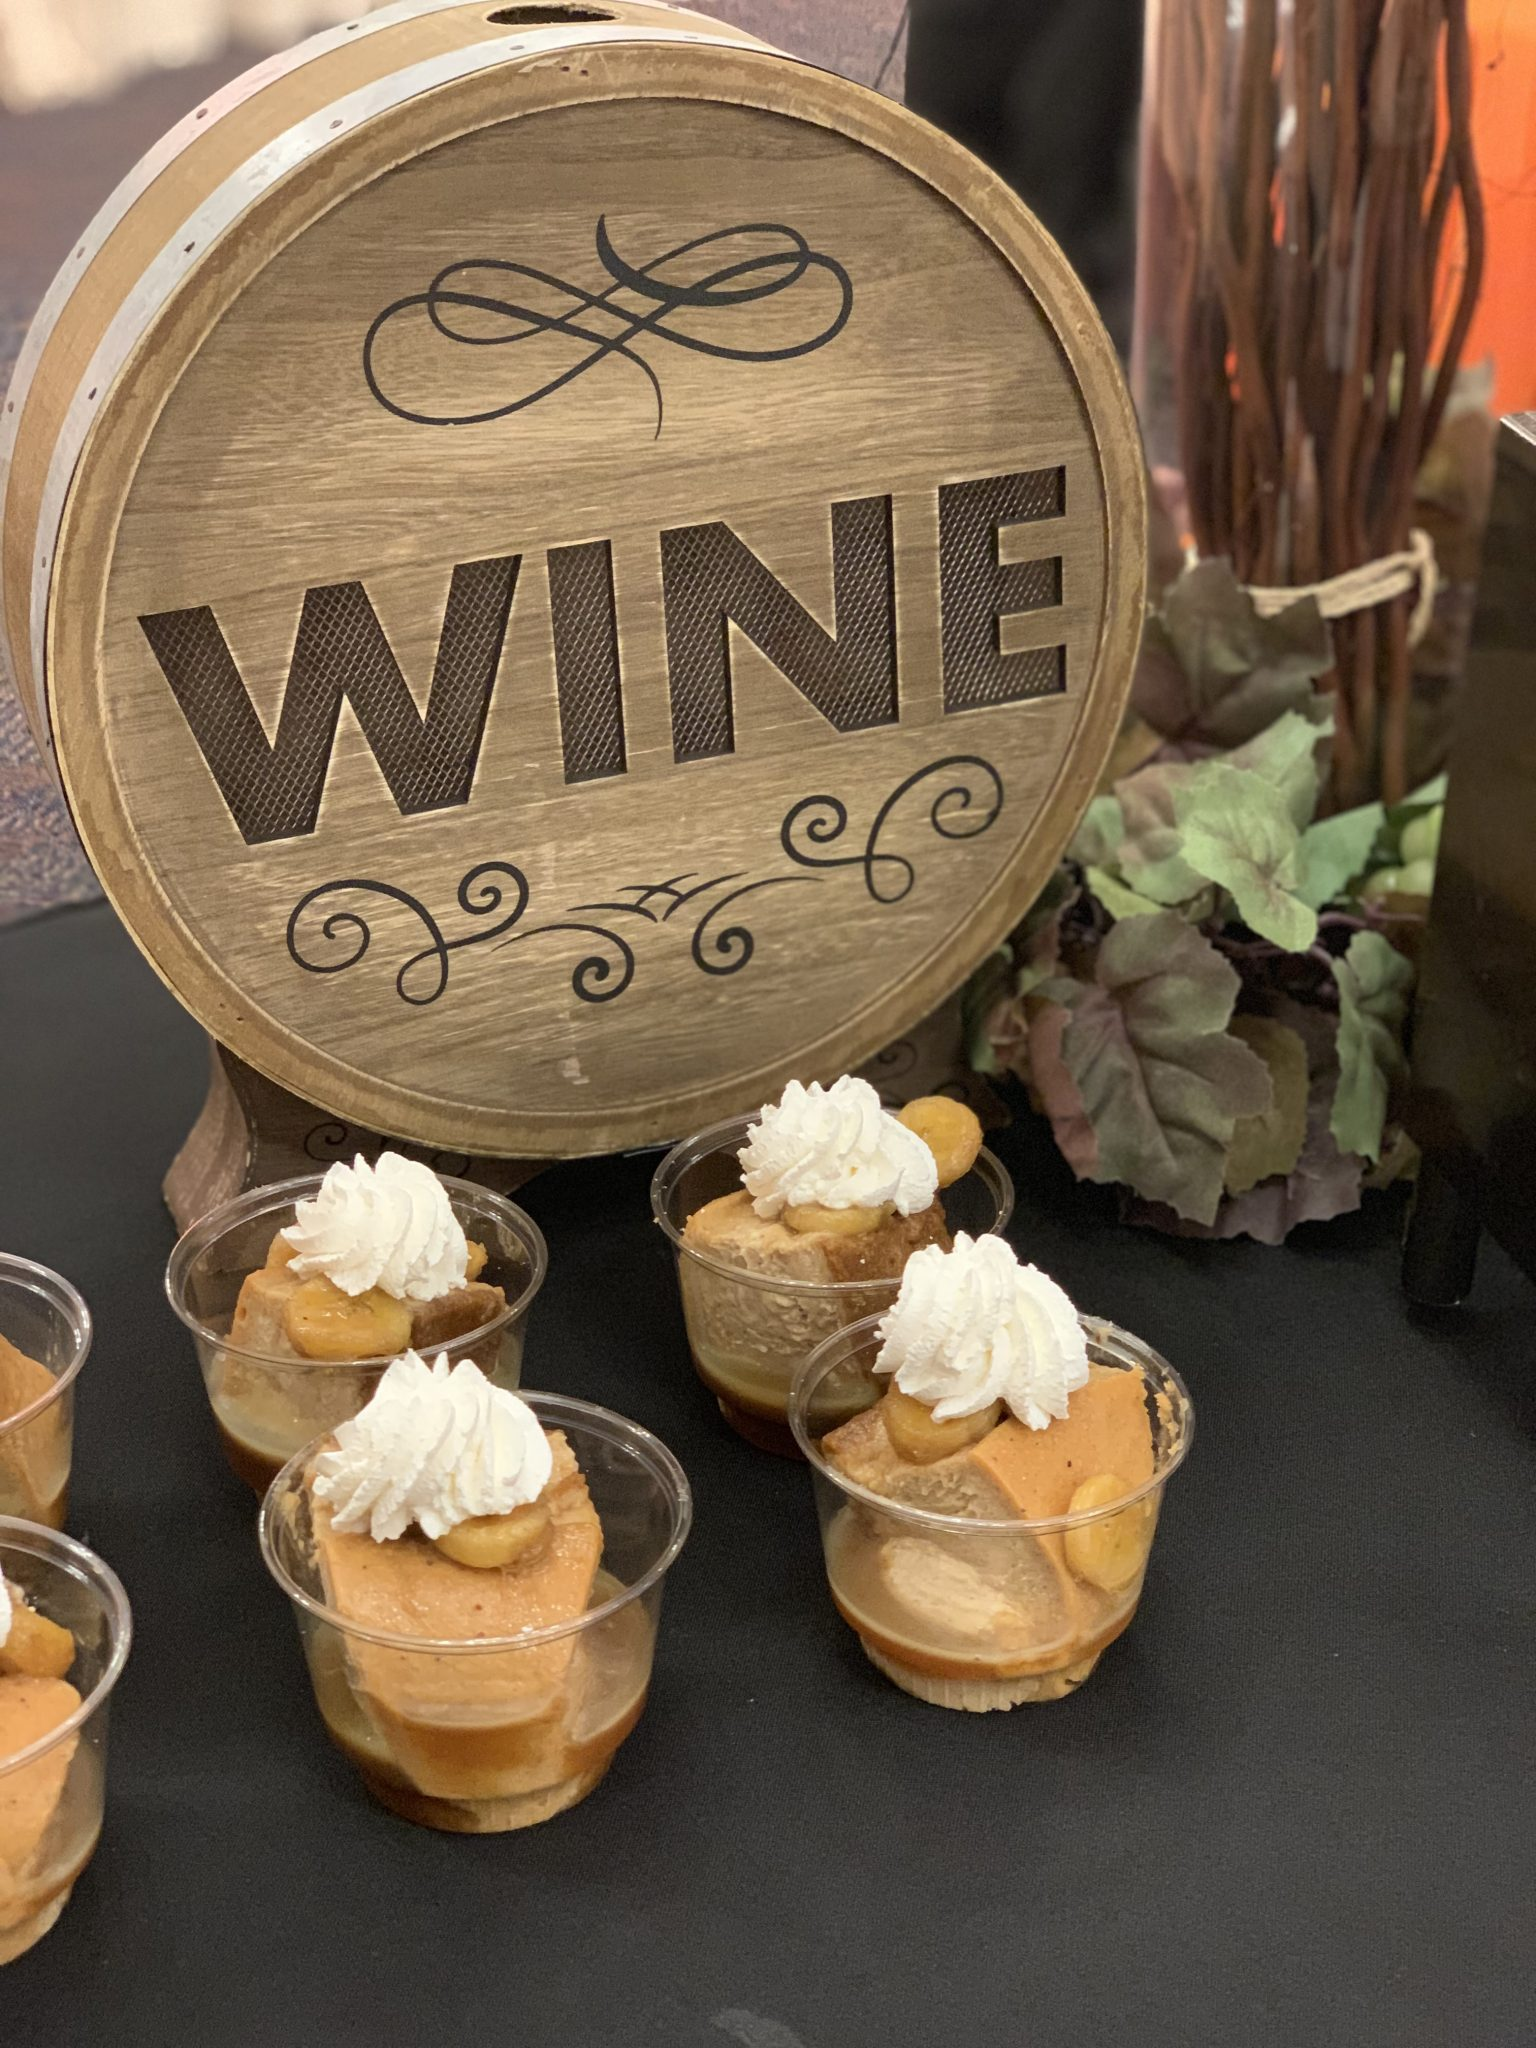 Banana Fosters Cheesecake at Busch Gardens Tampa Bay Food and Wine Festival Nola Food Cabin